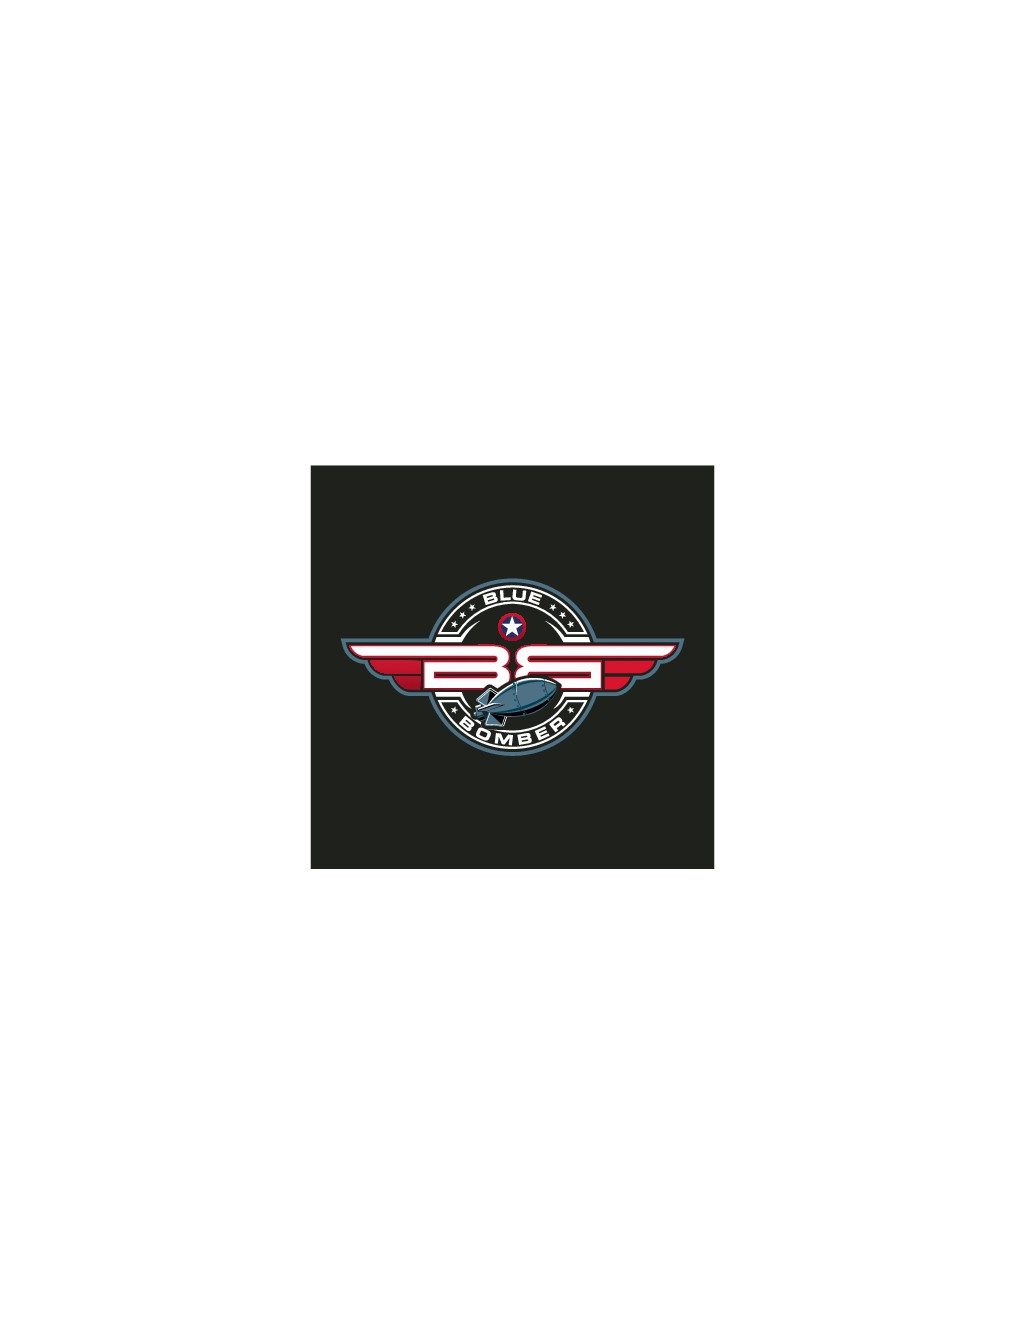 Logo for P-40 Bomber themed Jeep